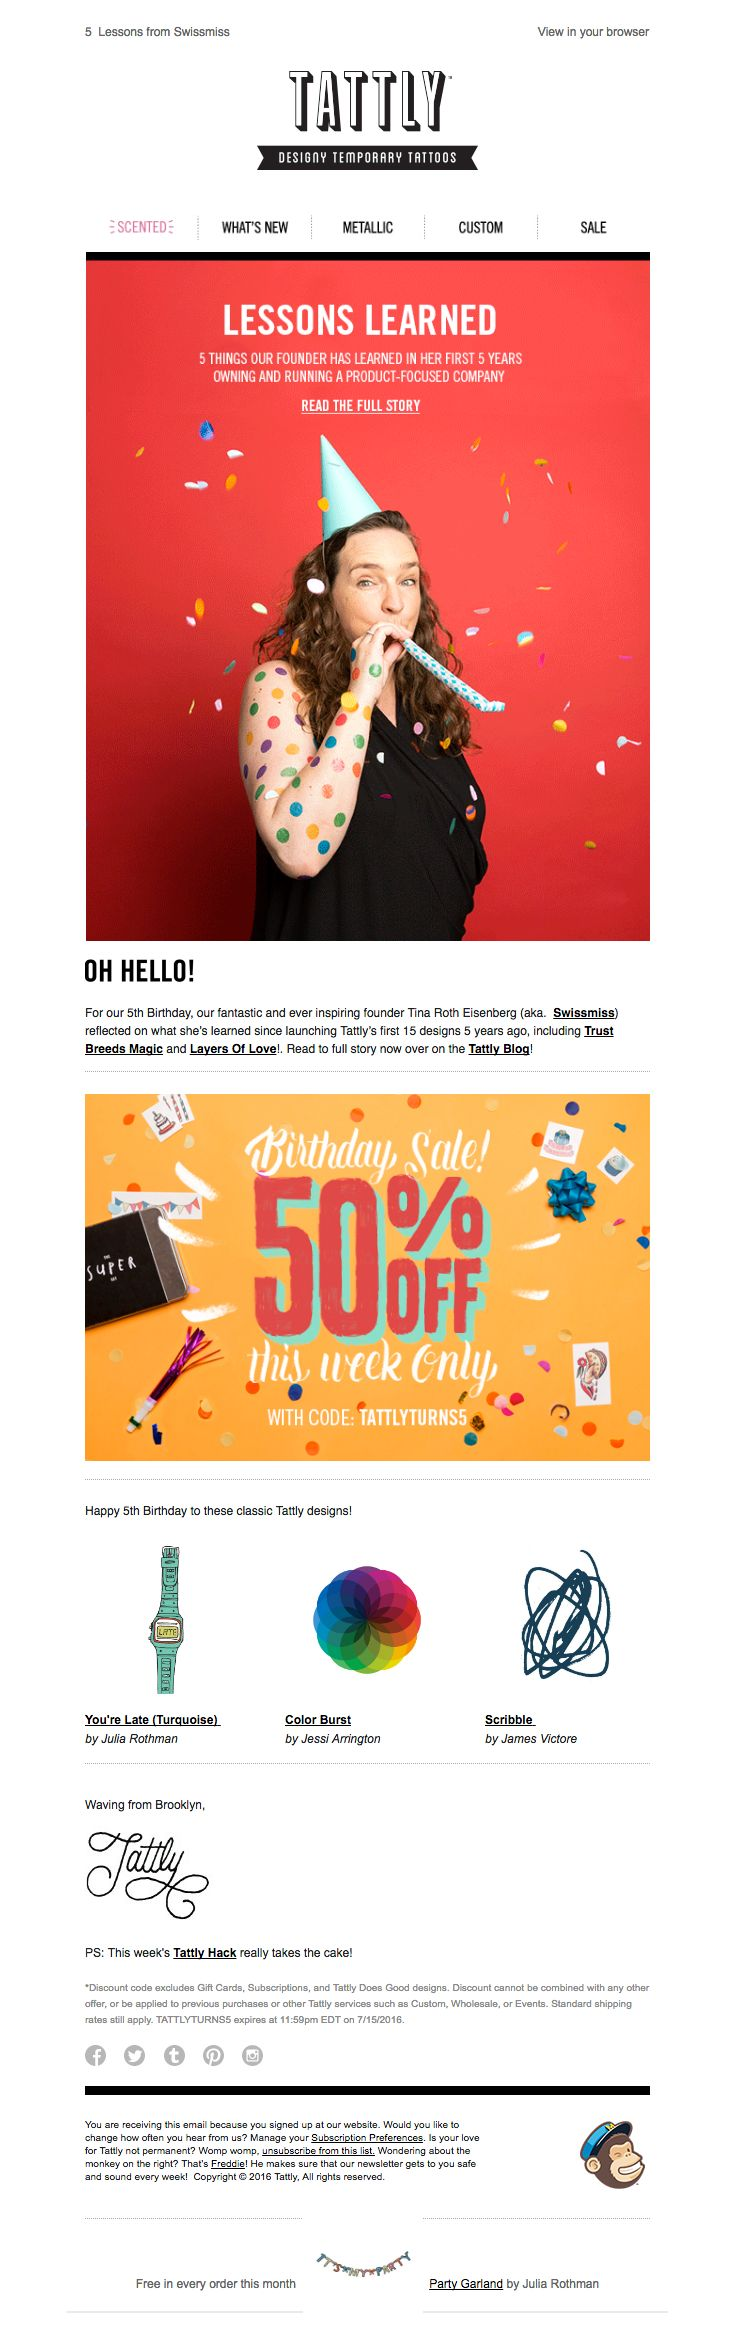 @tattly  sent this email with the subject line: 5 Things We've Learned in 5 Years - Read about this email and find more customer appreciation emails at ReallyGoodEmails.com #customerappreciation #thankyou #newsletter